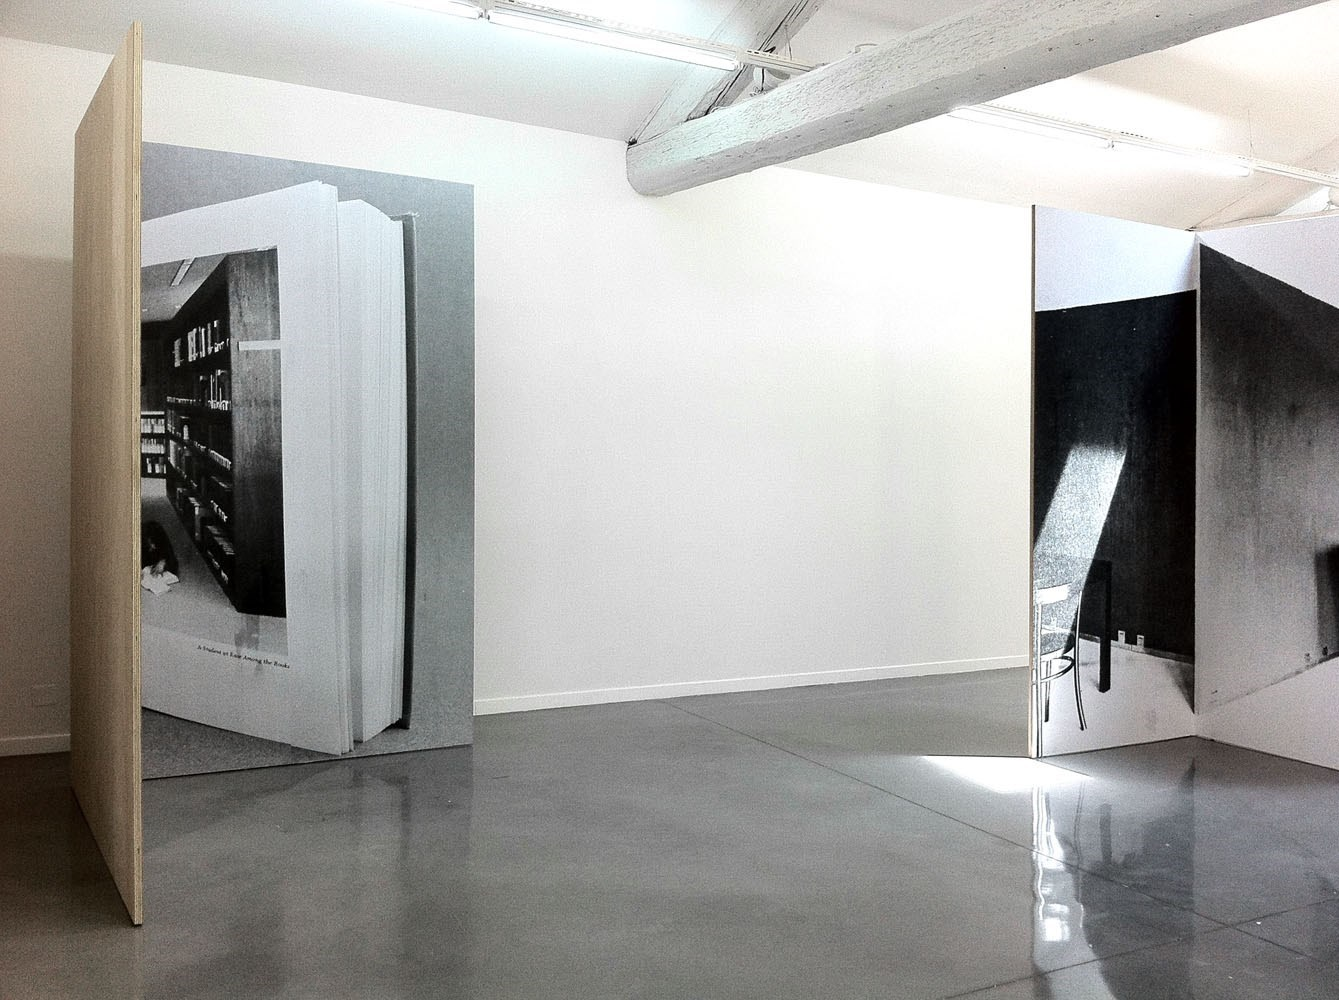 A Student at Ease Among the Books, 260 cm x 328cm, b&w prints and wood, Installation view Musée régional d'art contemporain Languedoc-Roussillon, Sérignan